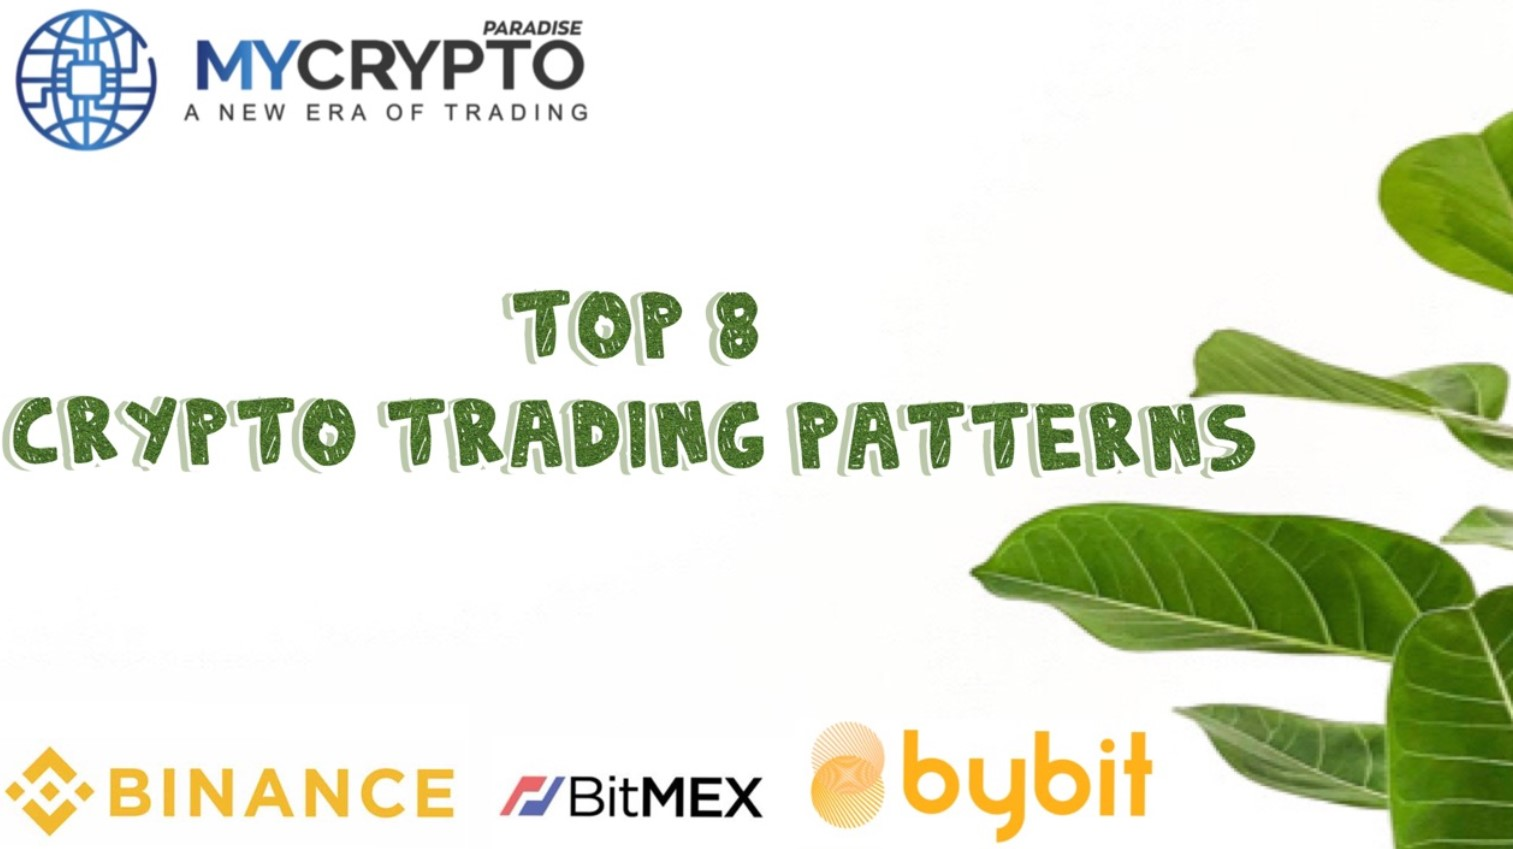 Top 8 Crypto Trading Patterns